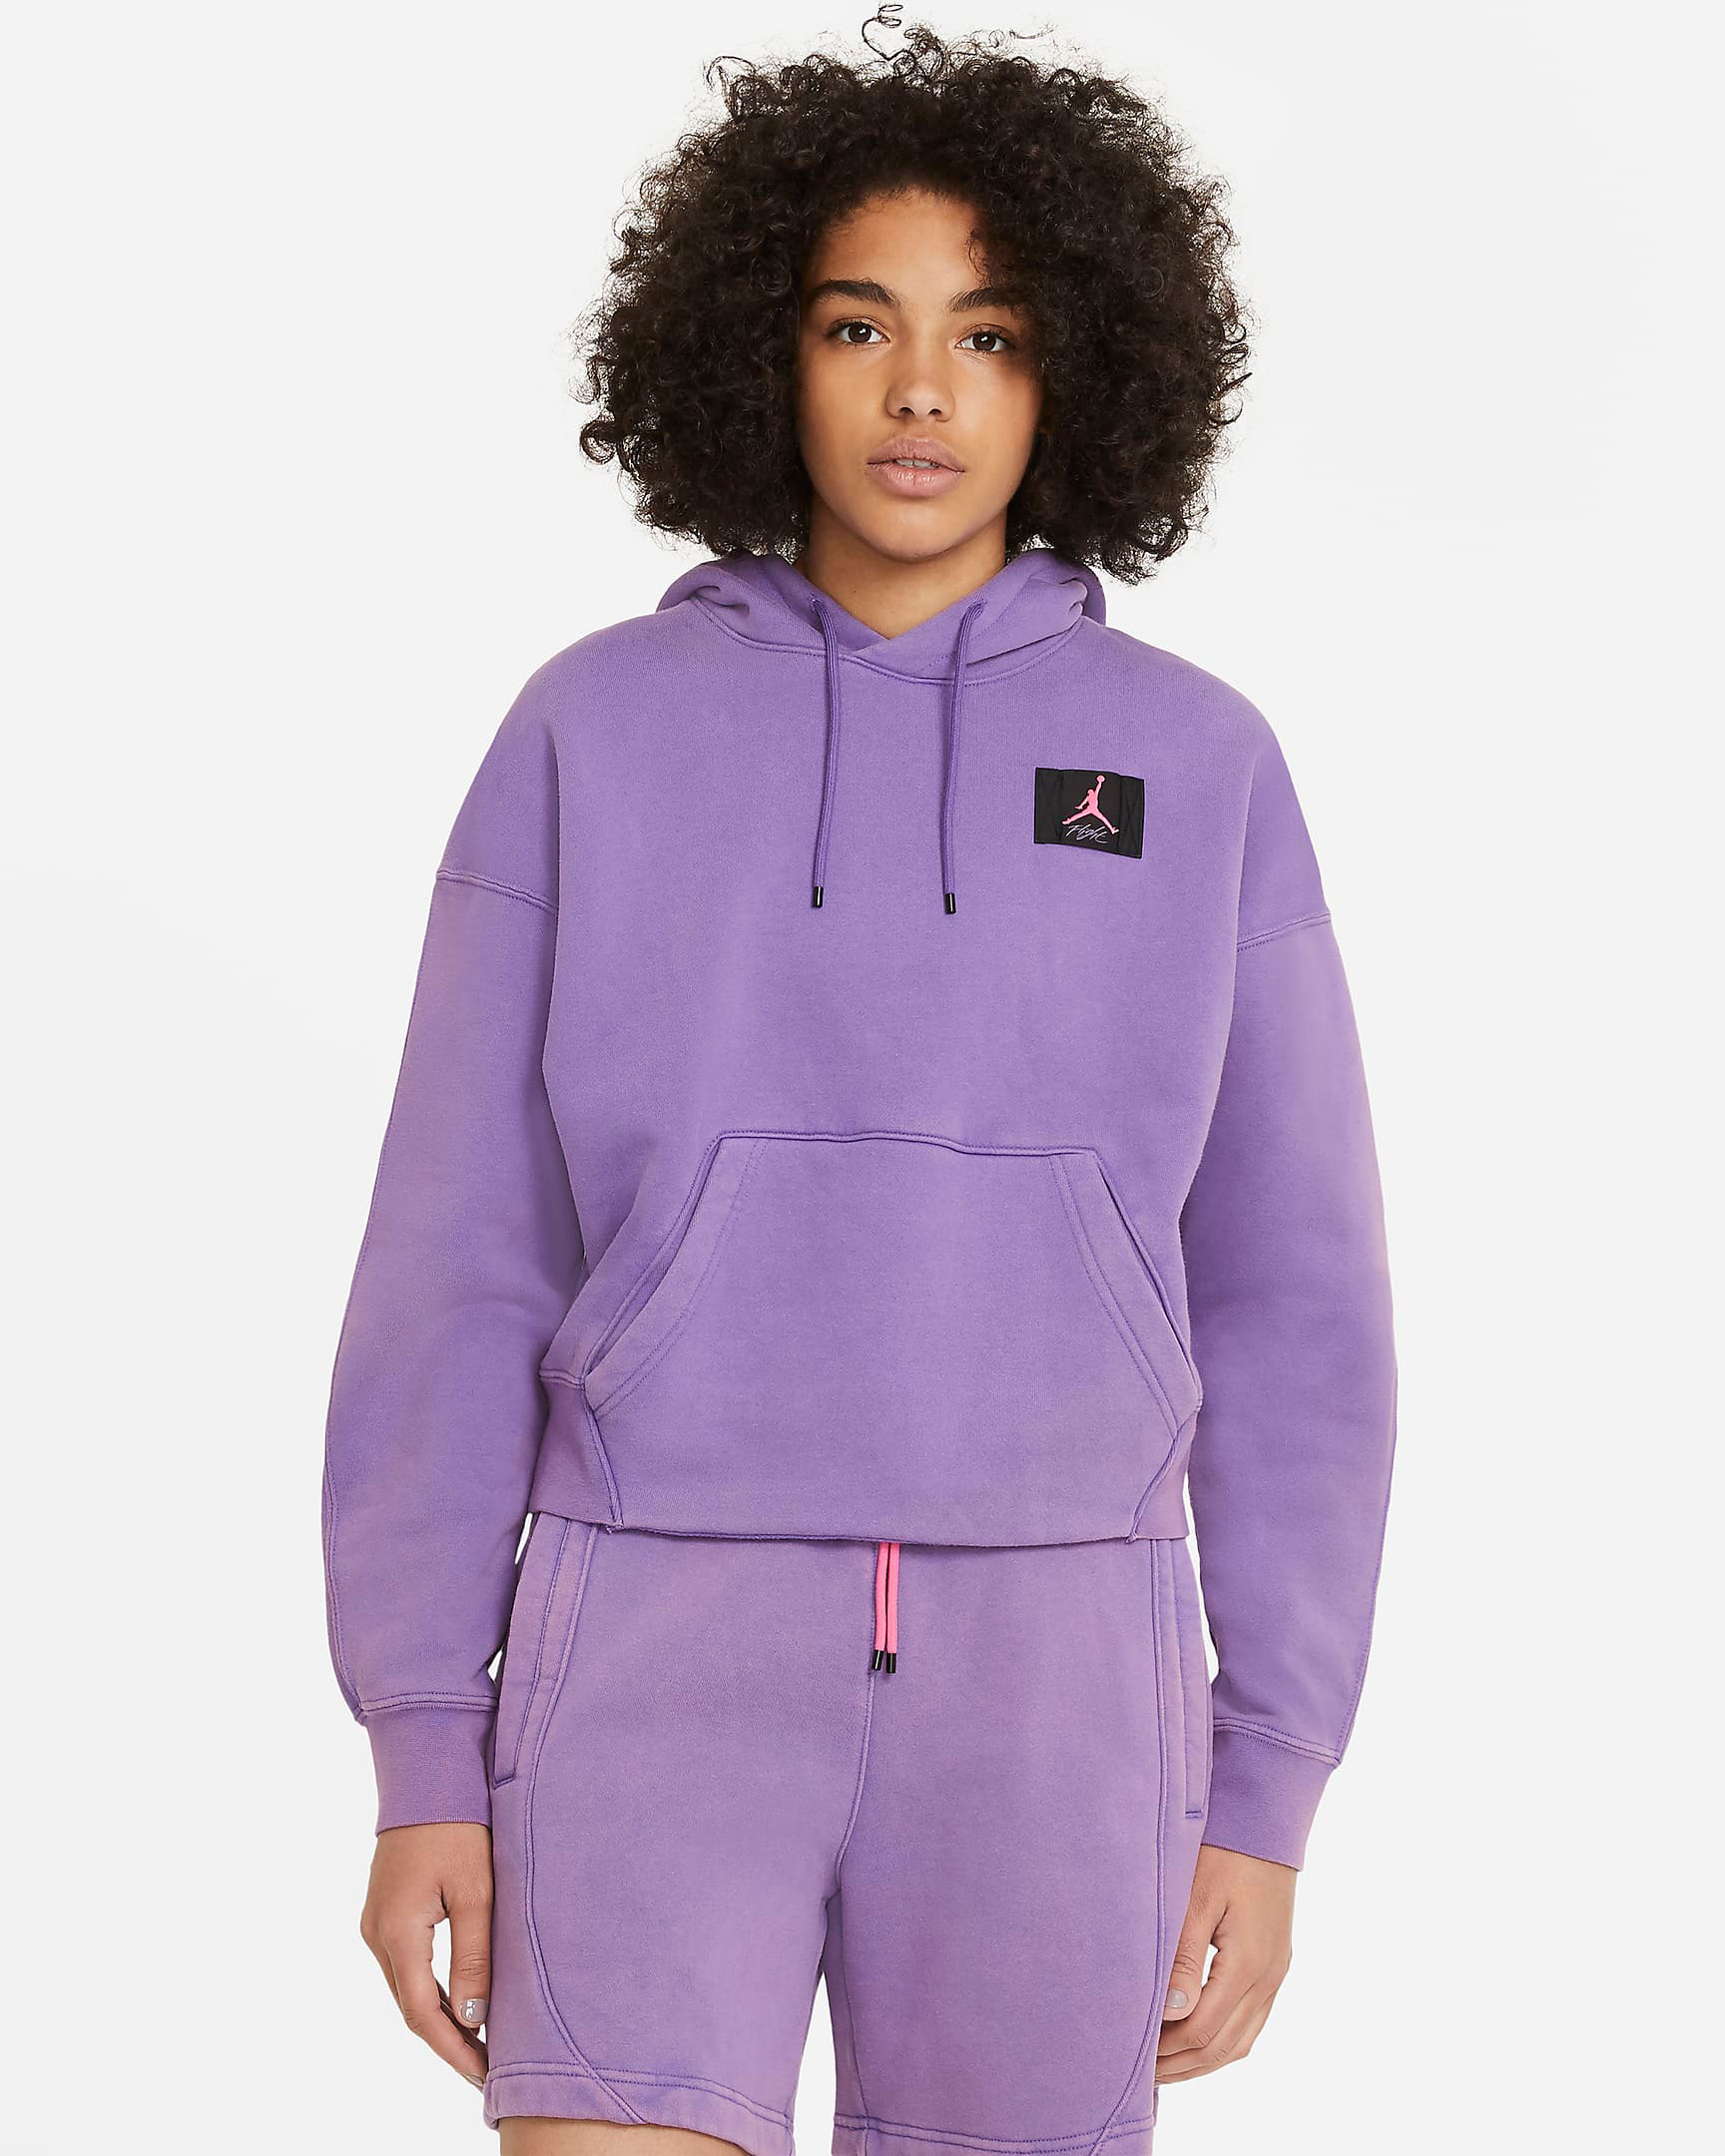 jordan-flight-womens-hoodie-purple-pink-1